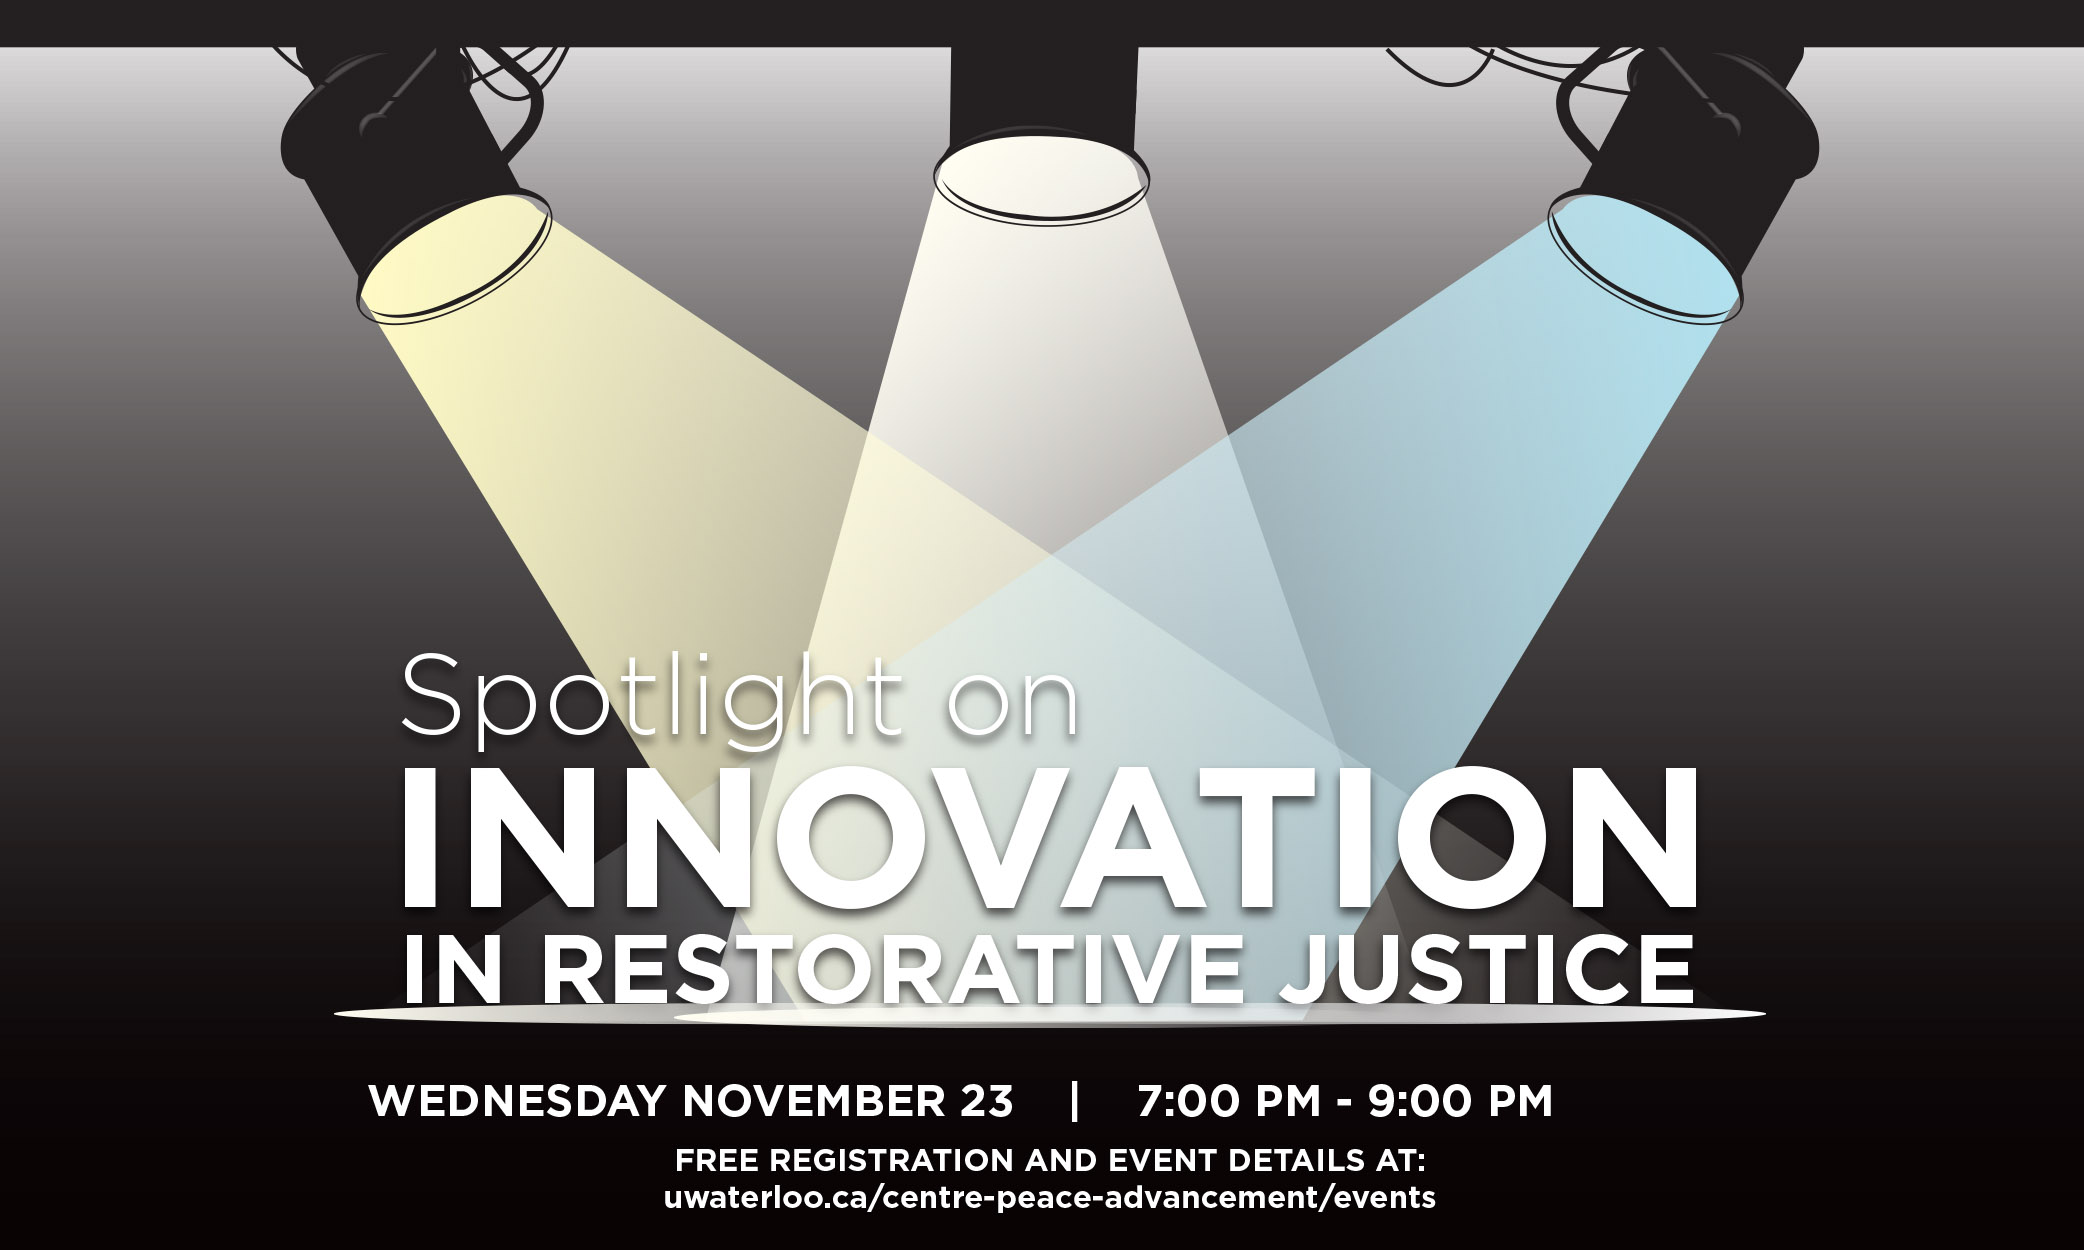 spotlight on innovation in restorative justice shareable image